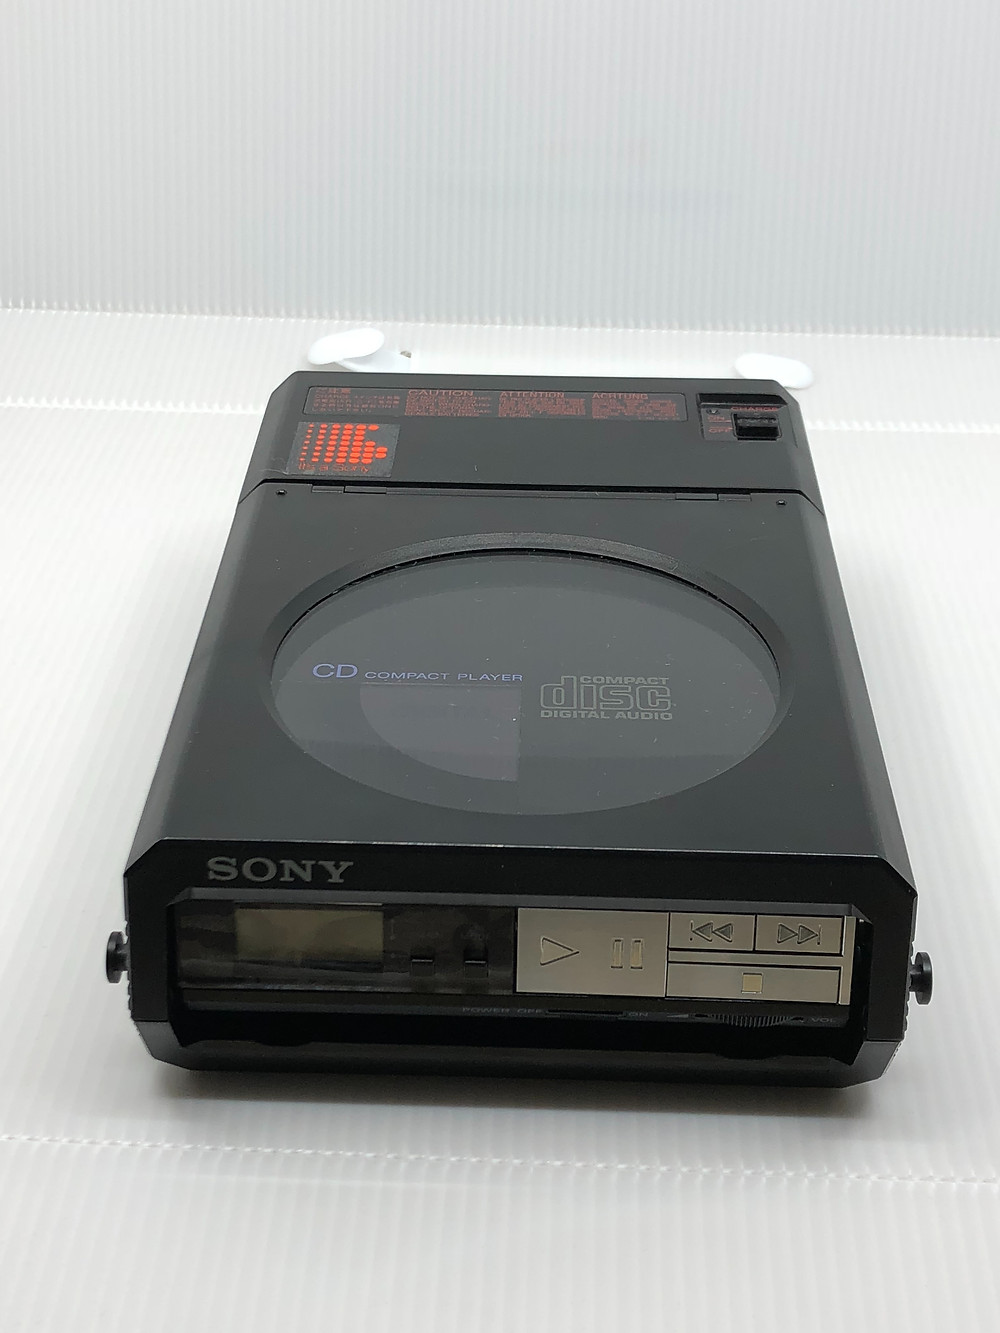 Sony Discman D-5 Black Portable CD Player